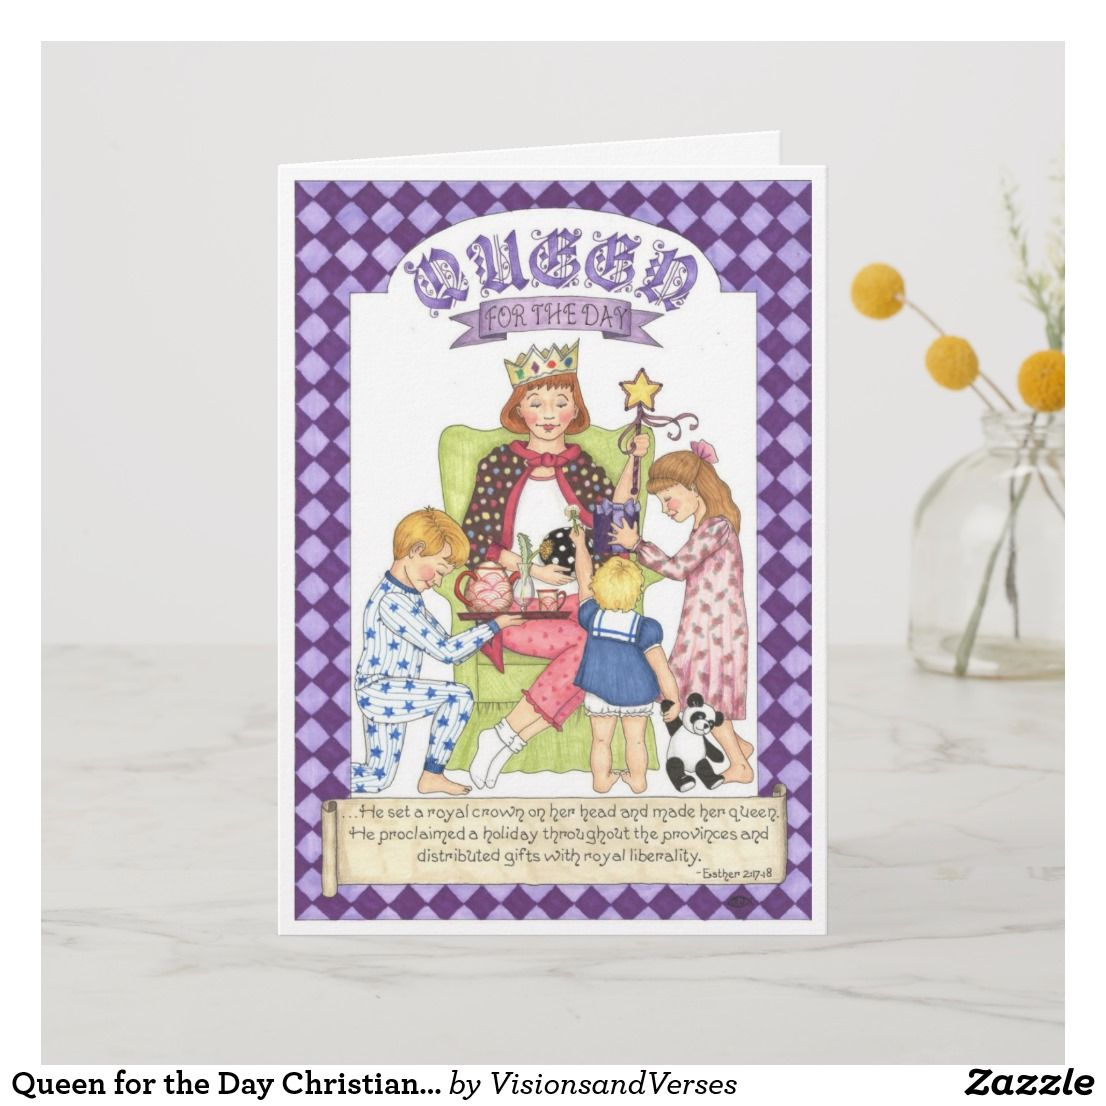 Queen For The Day Christian Birthday Card Zazzle Com Christian Birthday Cards Christian Birthday Birthday Cards